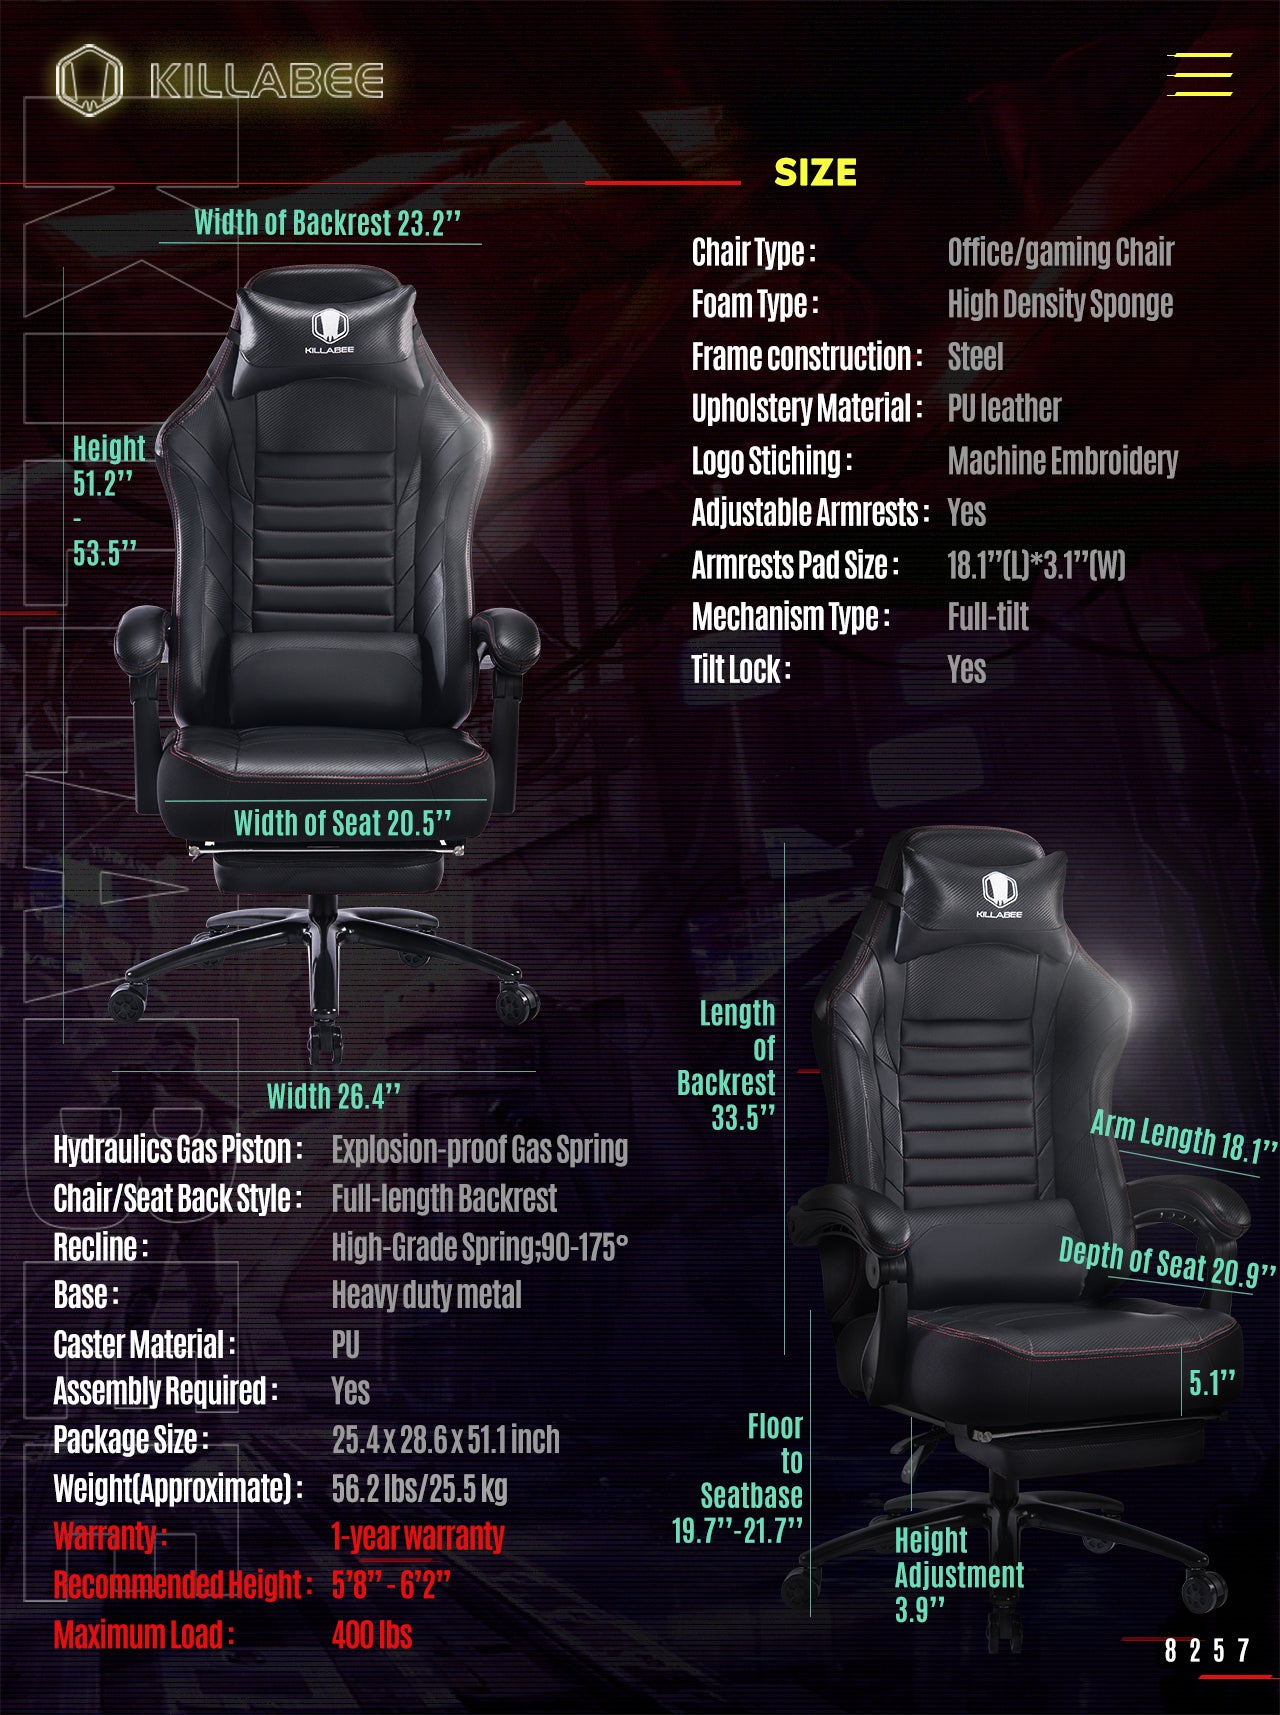 KILLABEE BIG AND TALL GAMING CHAIR 8257 BLACK SPECIFICATION